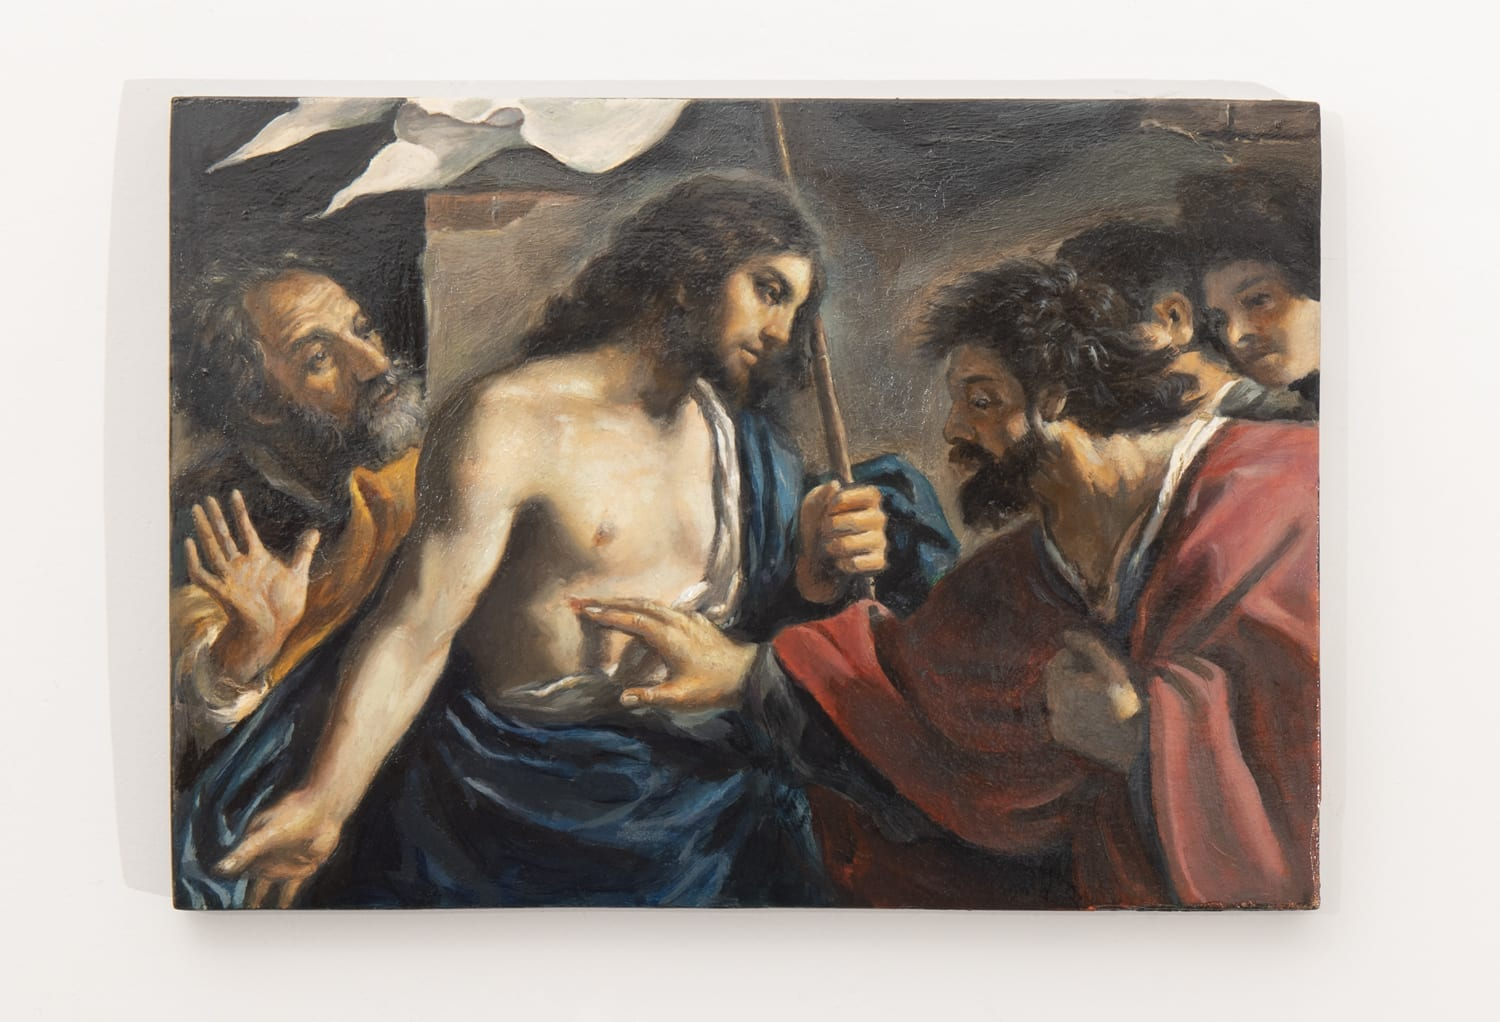 The incredulity of Saint Thomas: Limited by history